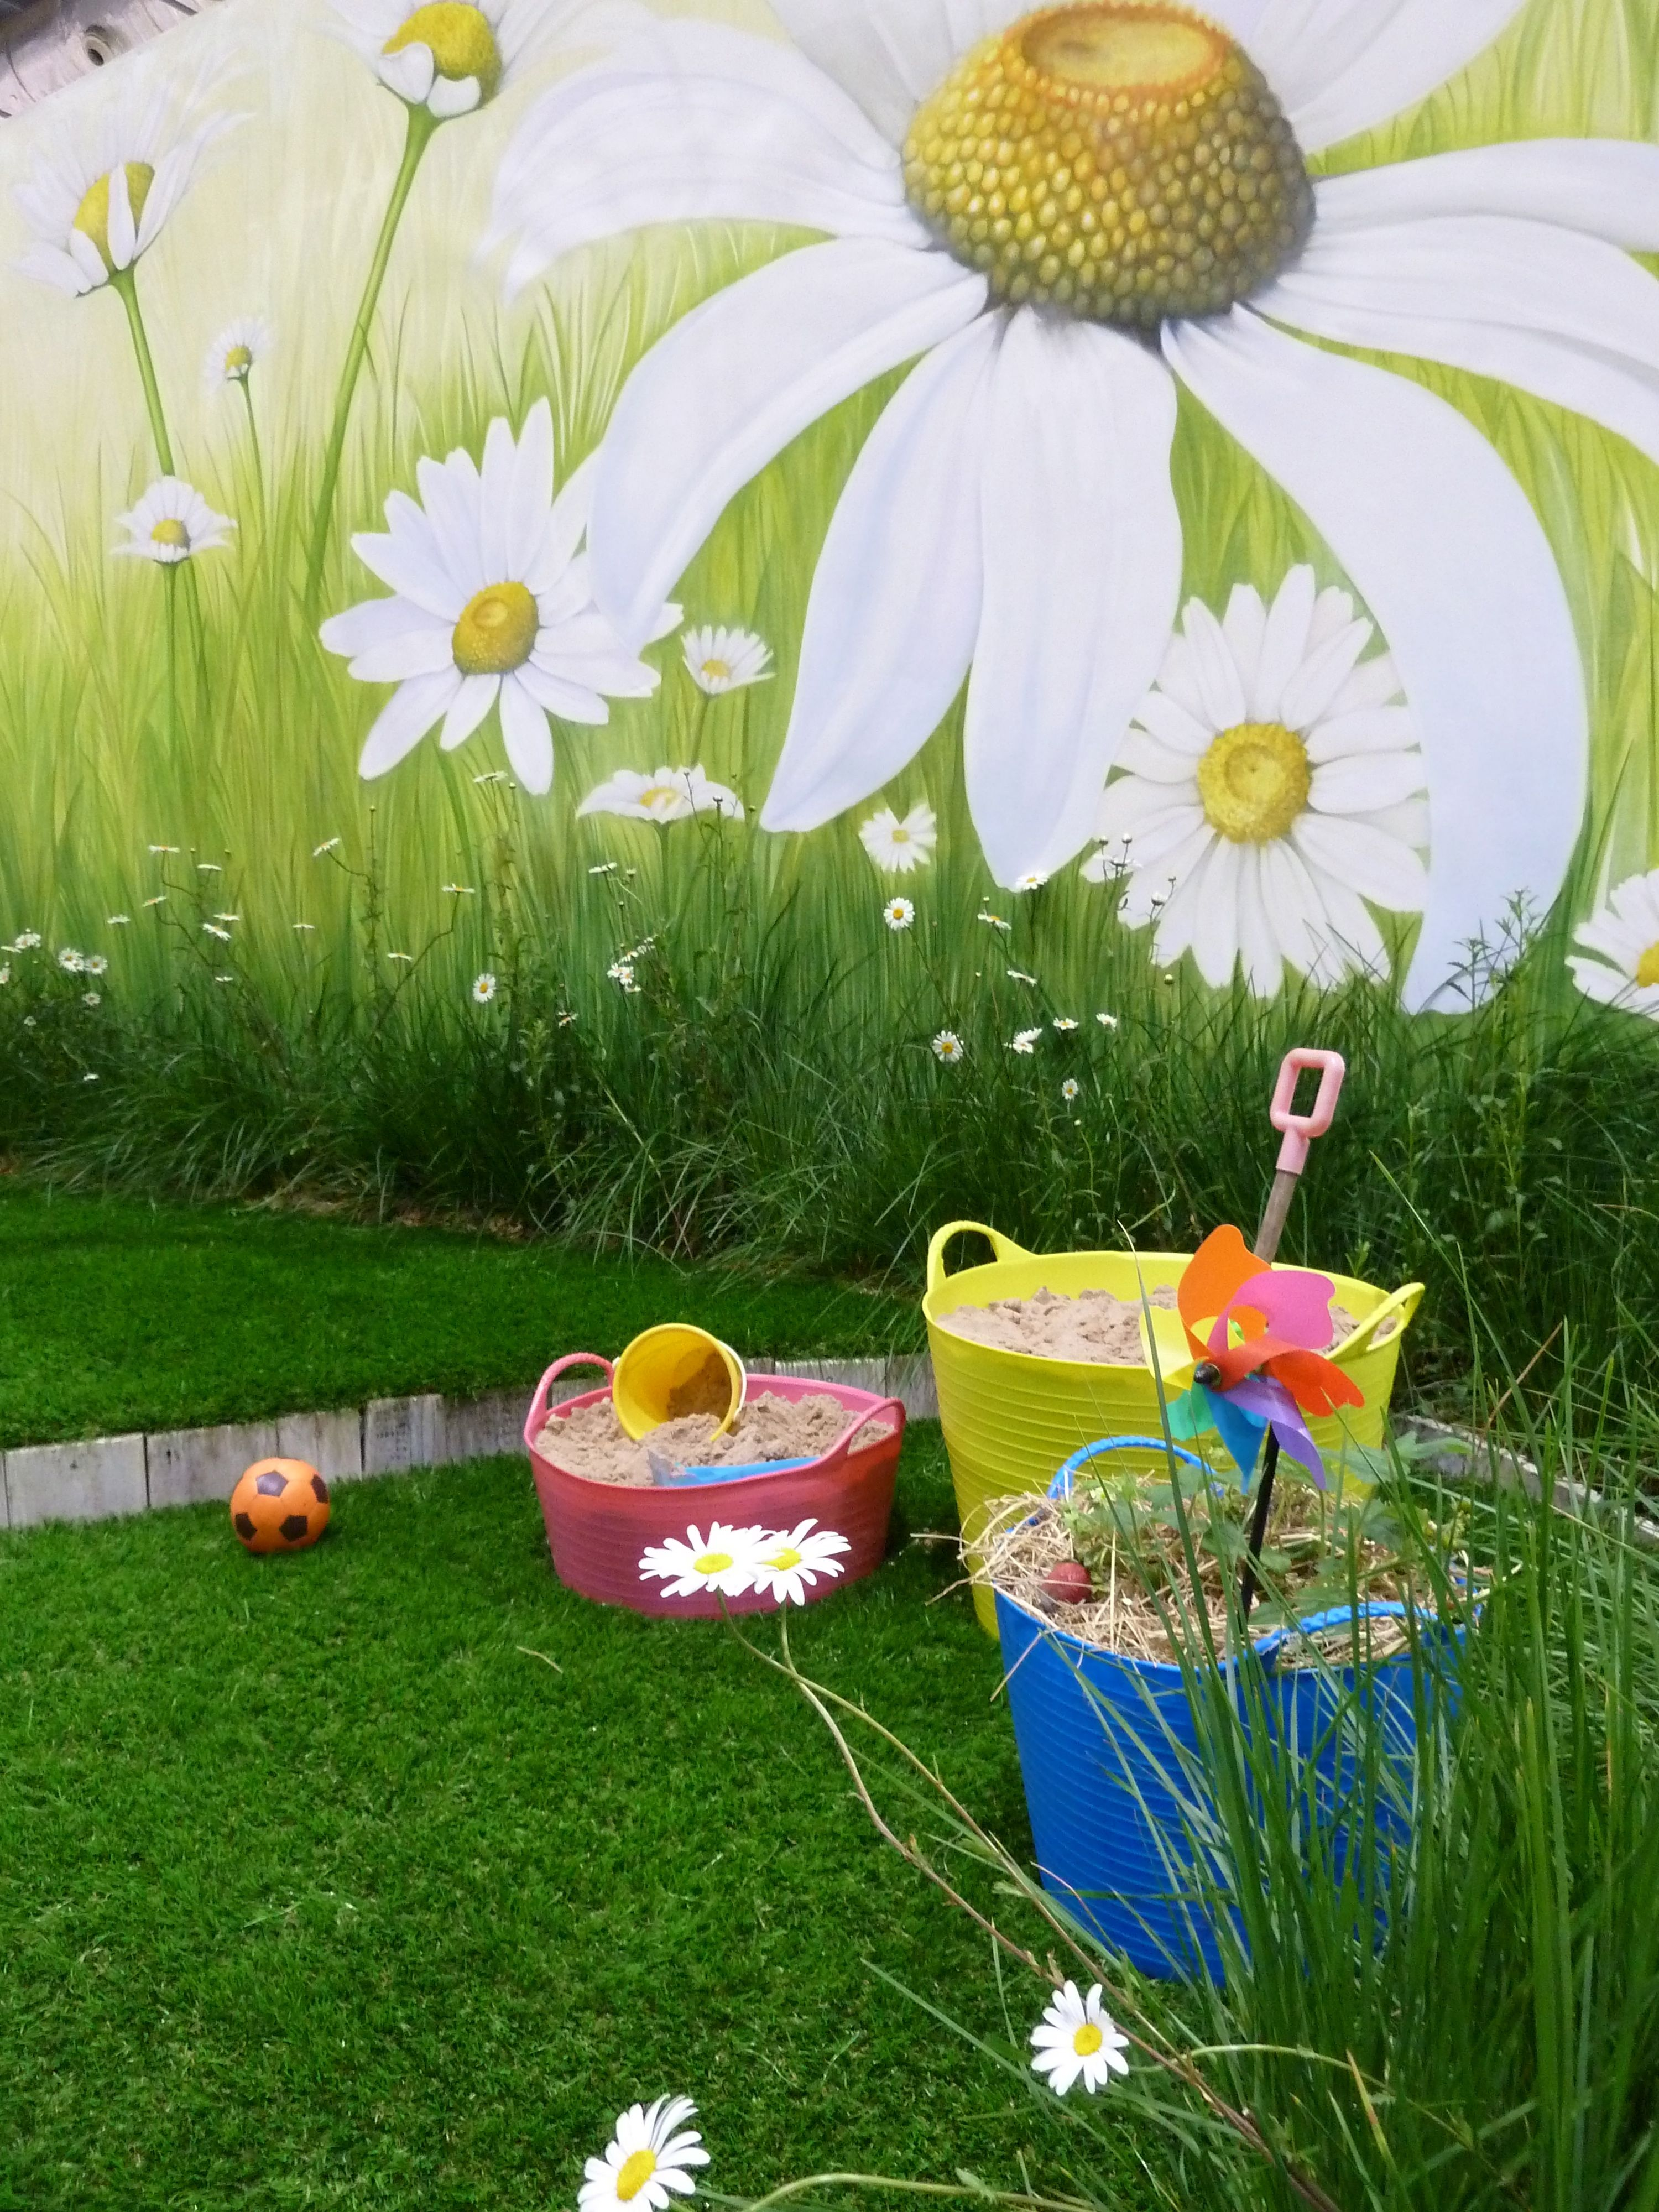 Playful garden design on display at grand designs live for Grand designs garden